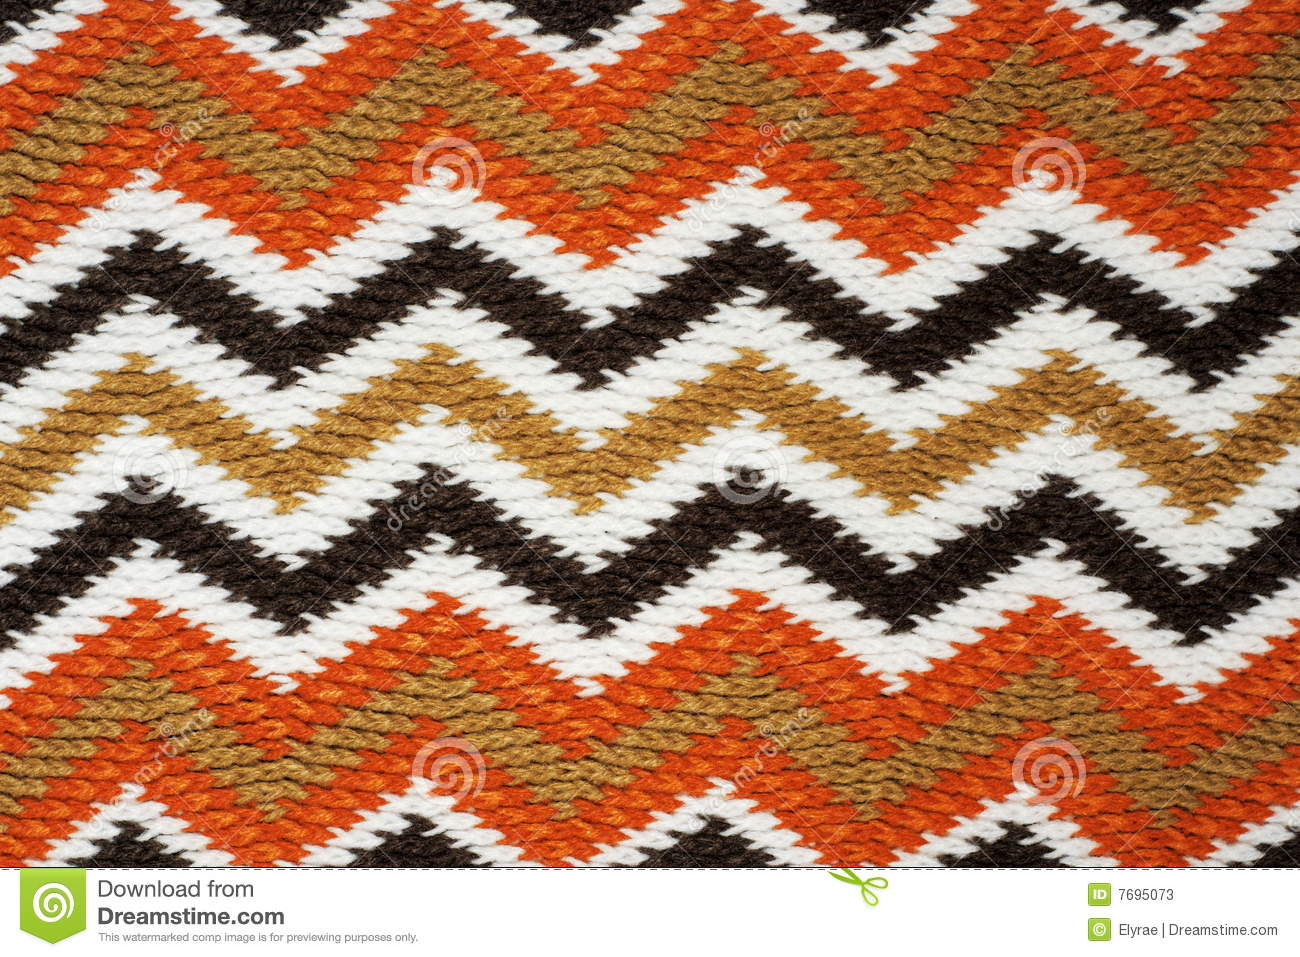 Knitting Works : Zigzag knitting work stock photos image